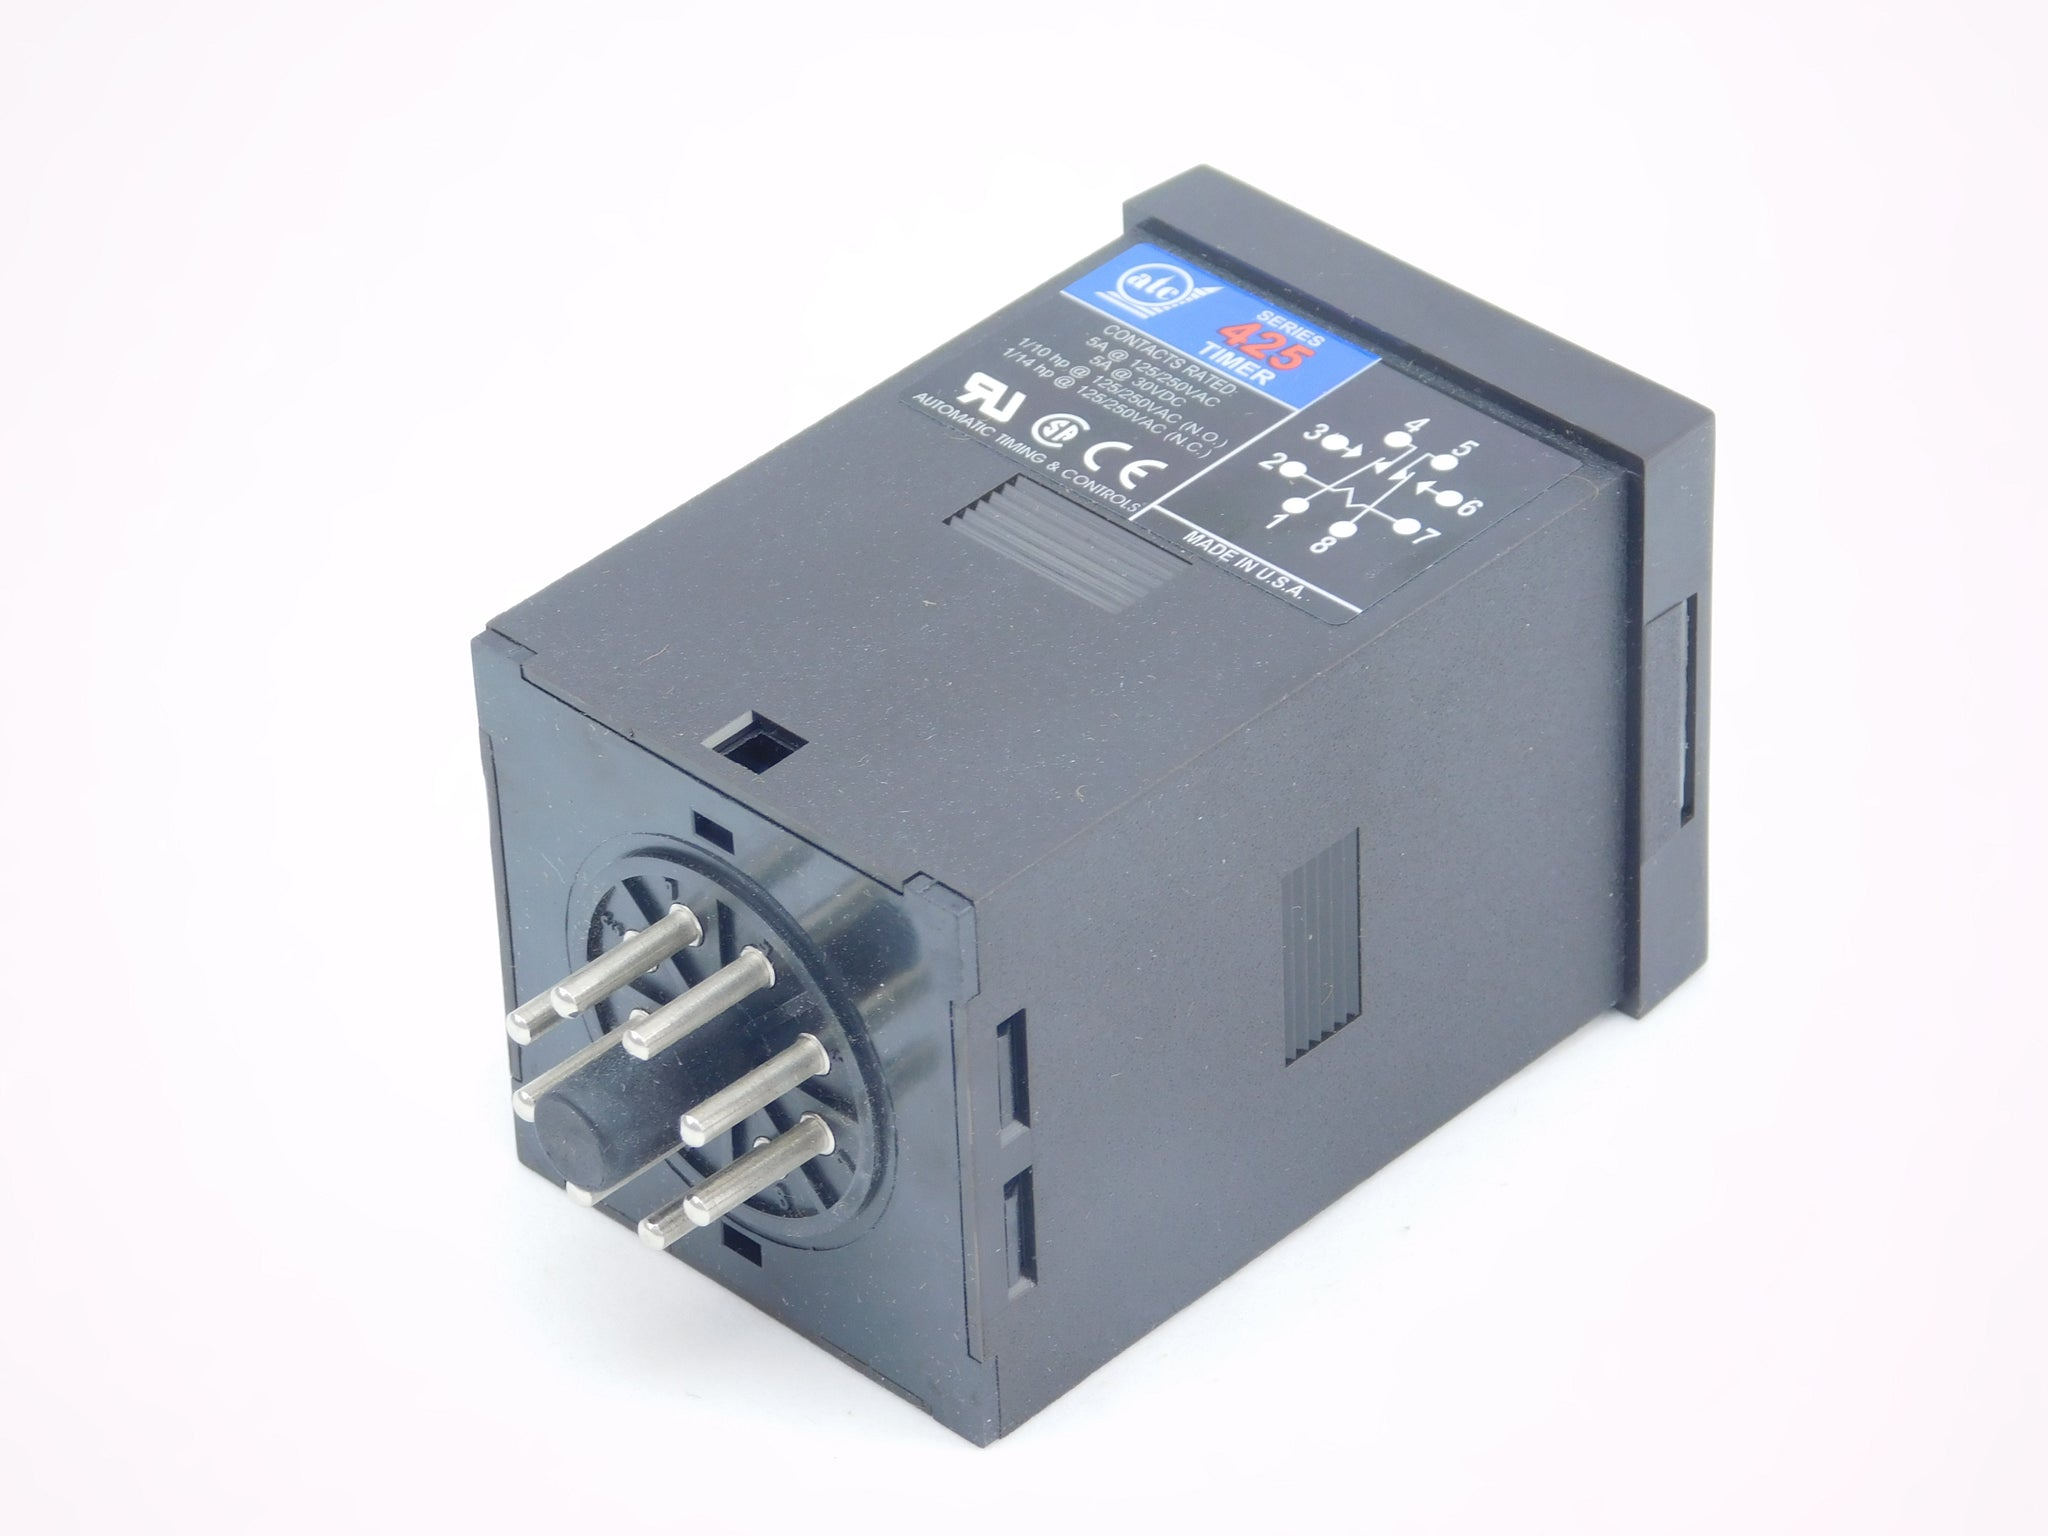 Timer Act 425 Discount Crematory Parts Circuit Breaker With